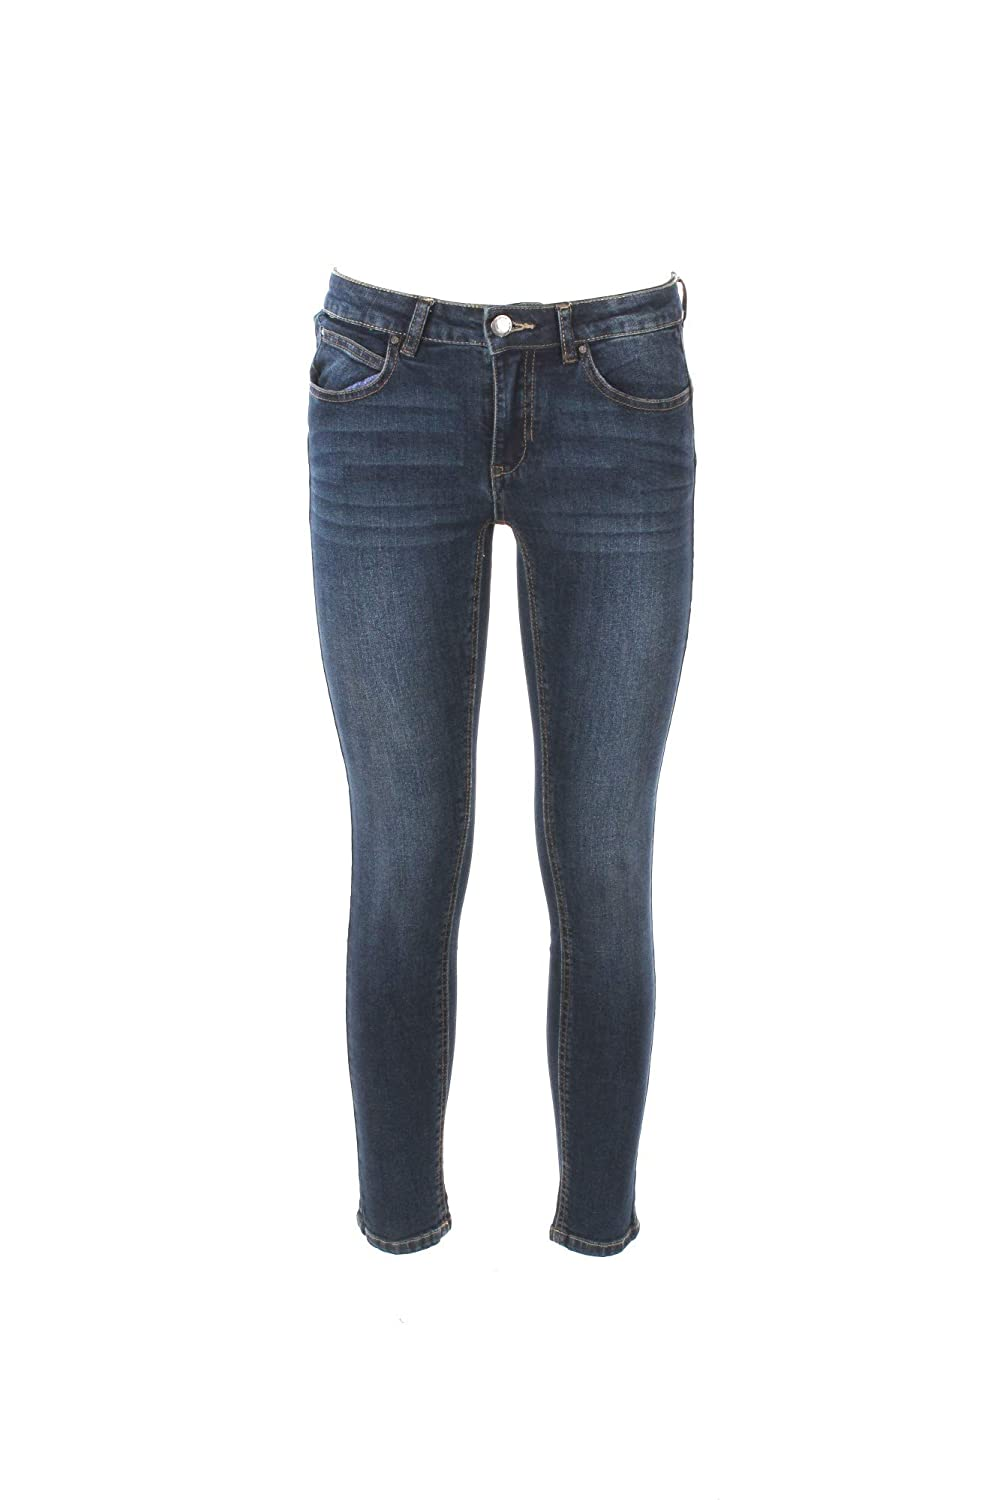 YES-ZEE Jeans Donna 30 Denim P314 X605 Autunno Inverno 2018/19